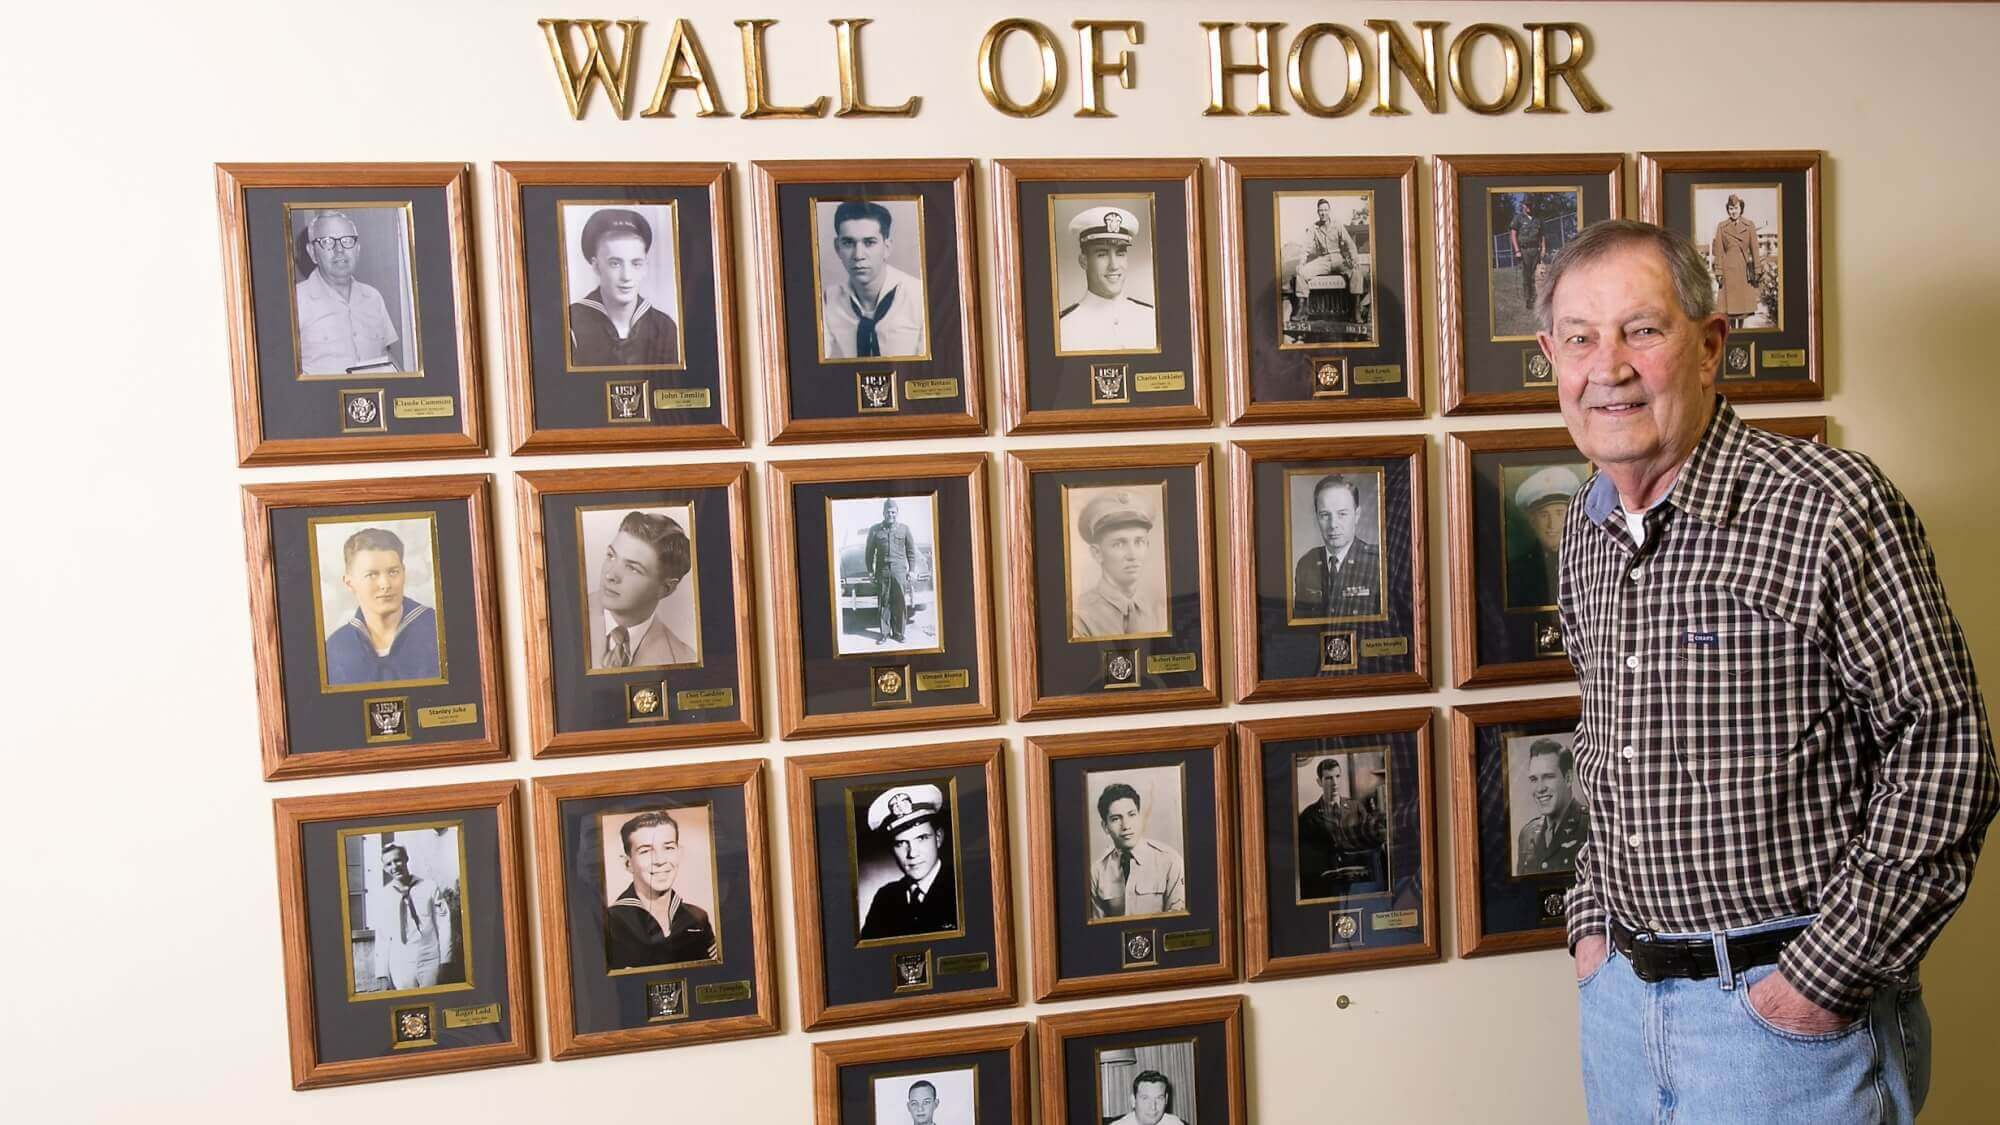 Provident Crossing Wall of Honor